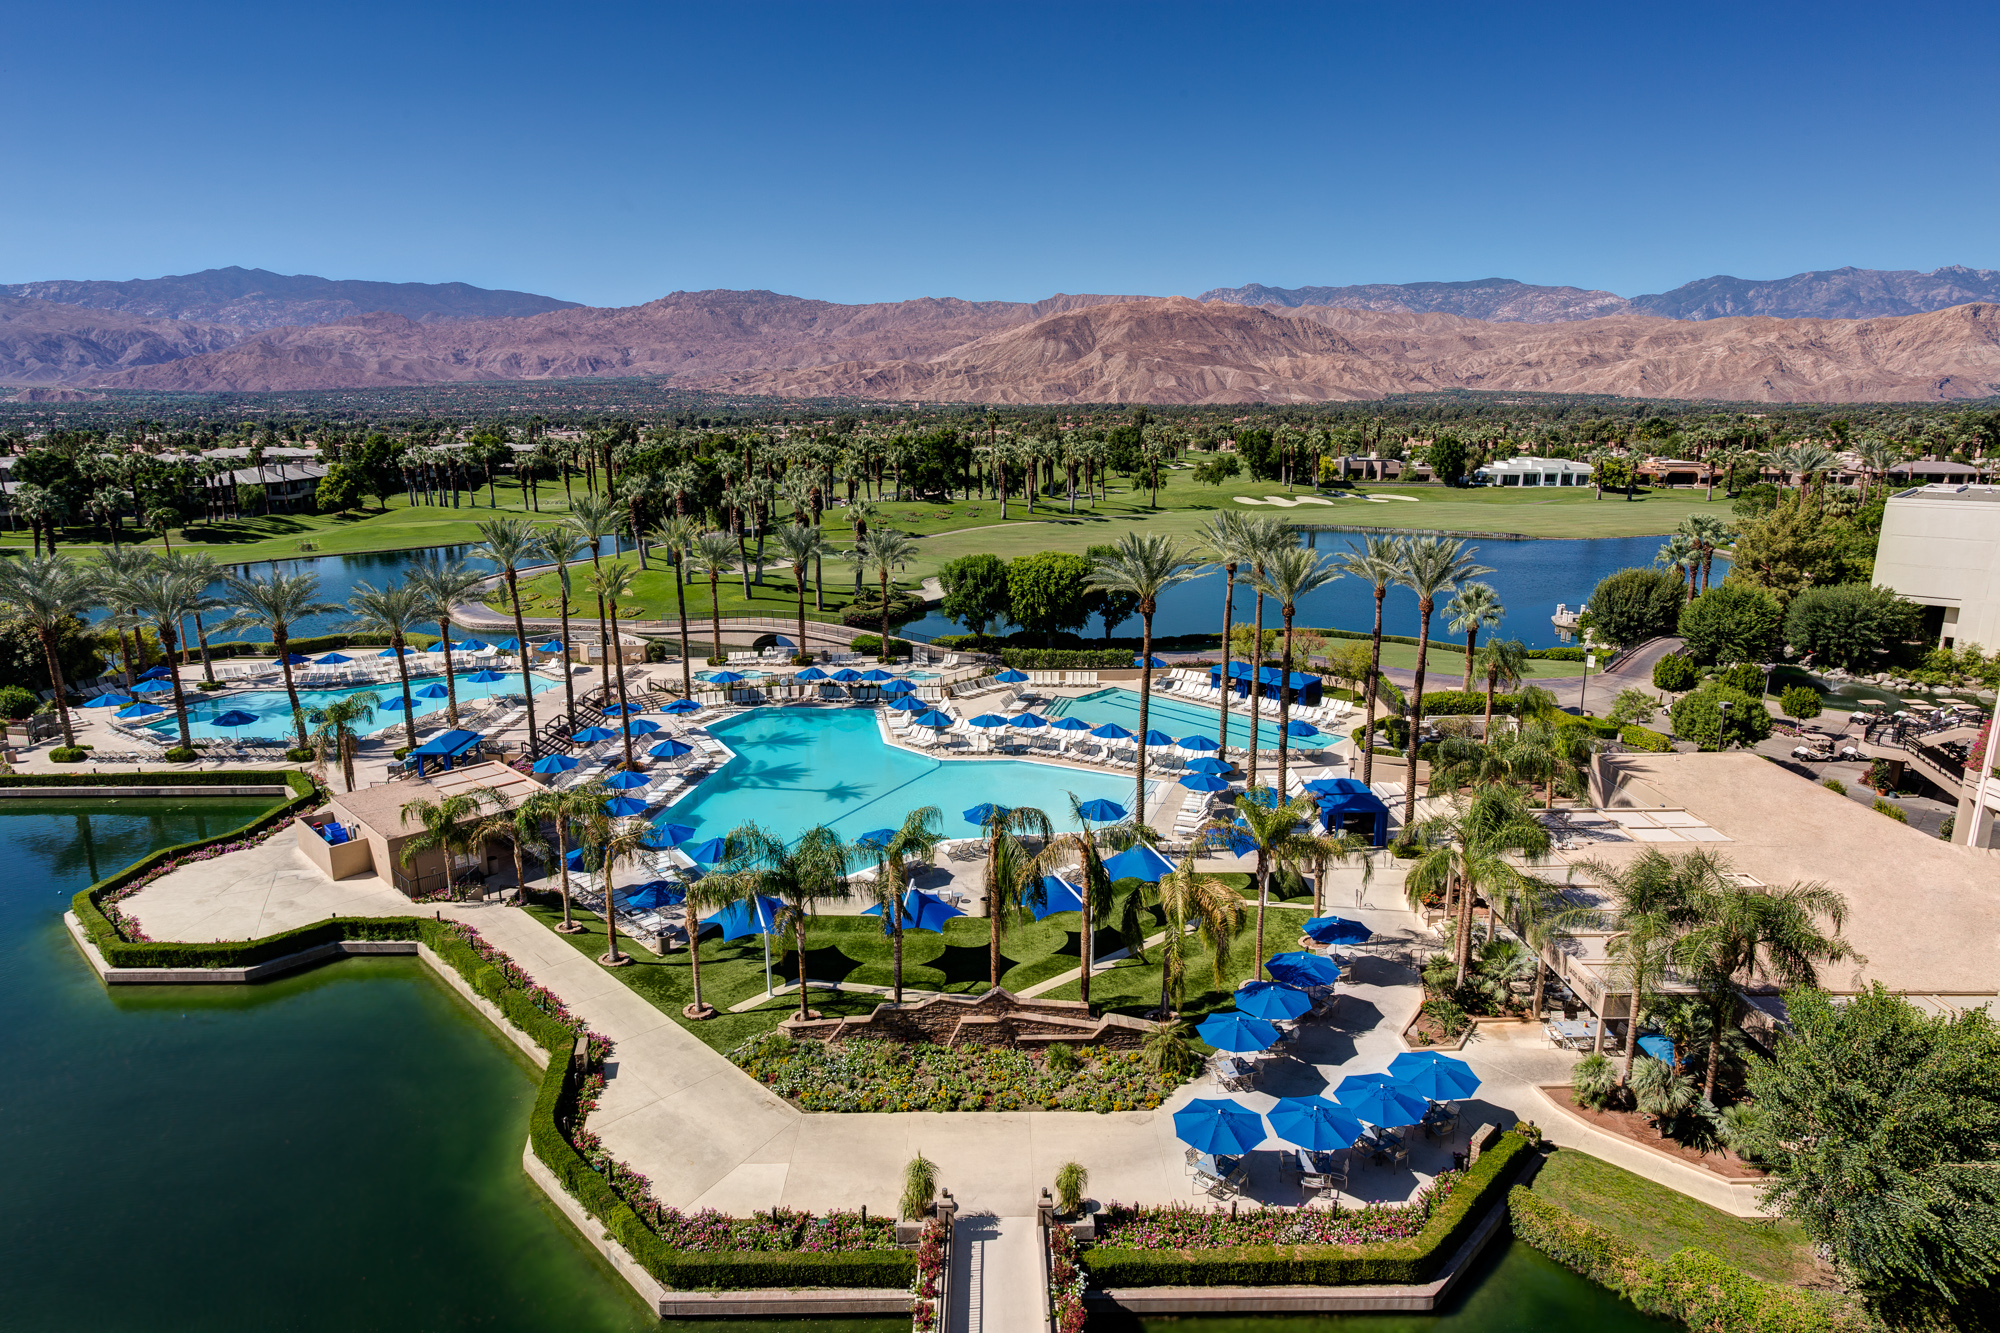 La Getaways 10 Full Service Resorts Near Los Angeles